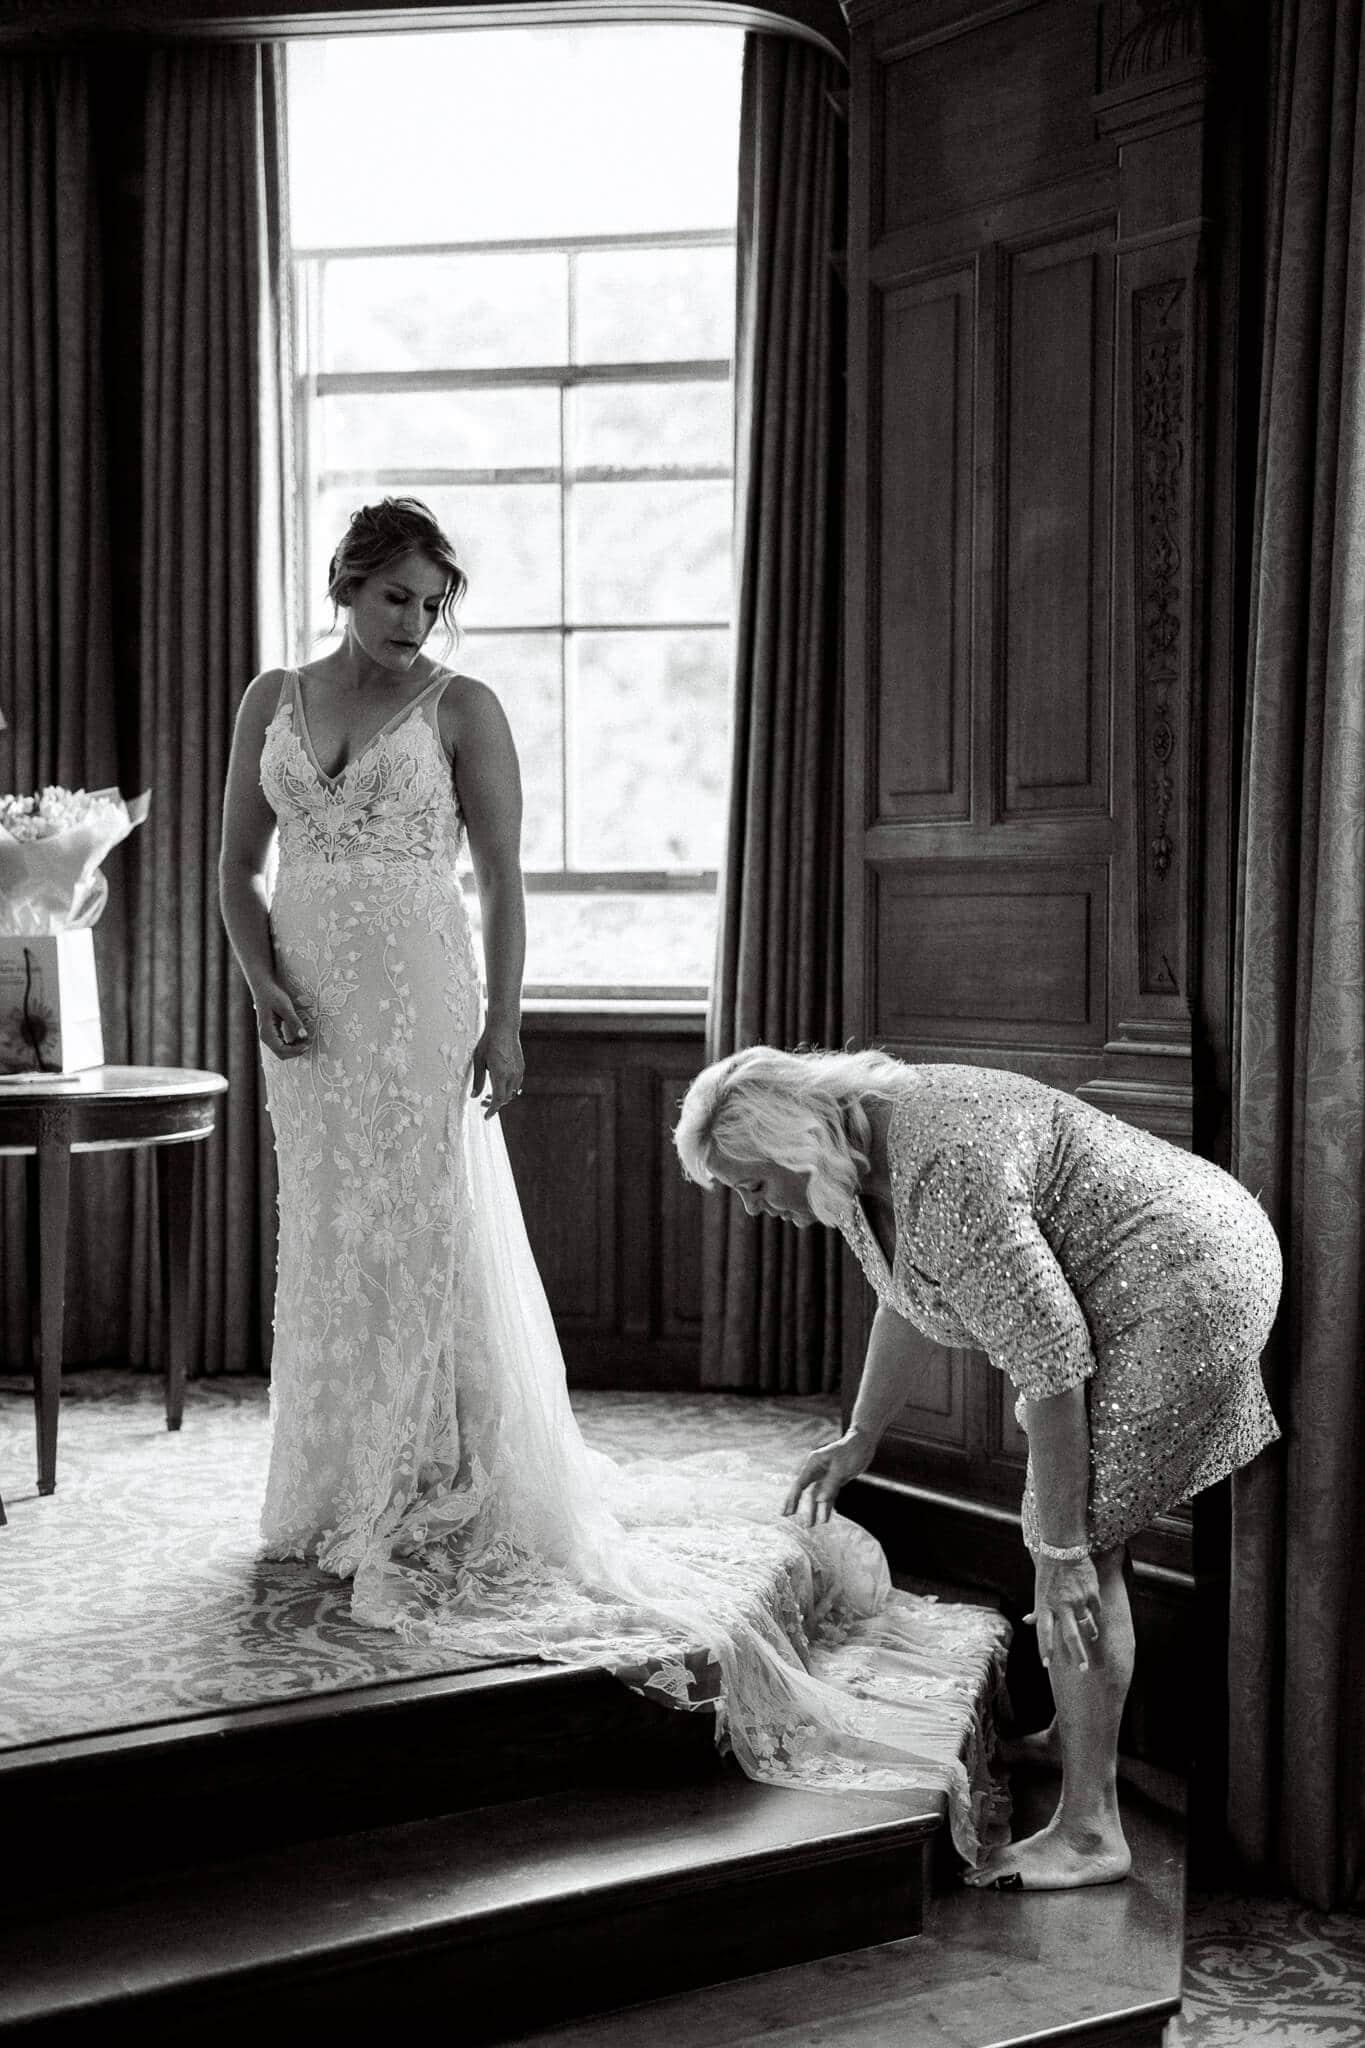 Cliveden hotel Bridal suite getting ready